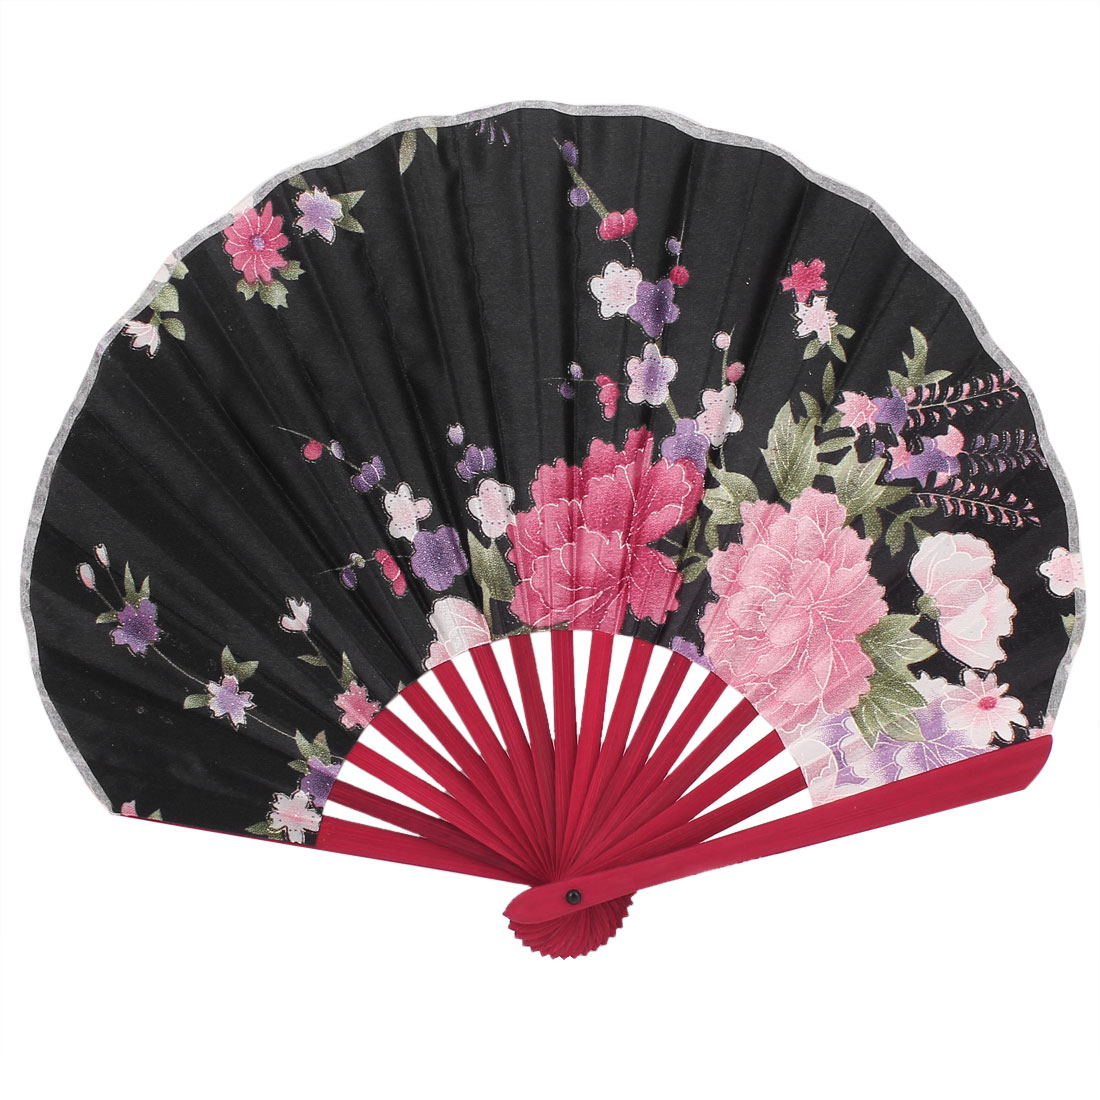 Party Decor Bamboo Ribs Fabric Blooming Flower Pattern Foldable Hand Fan Black